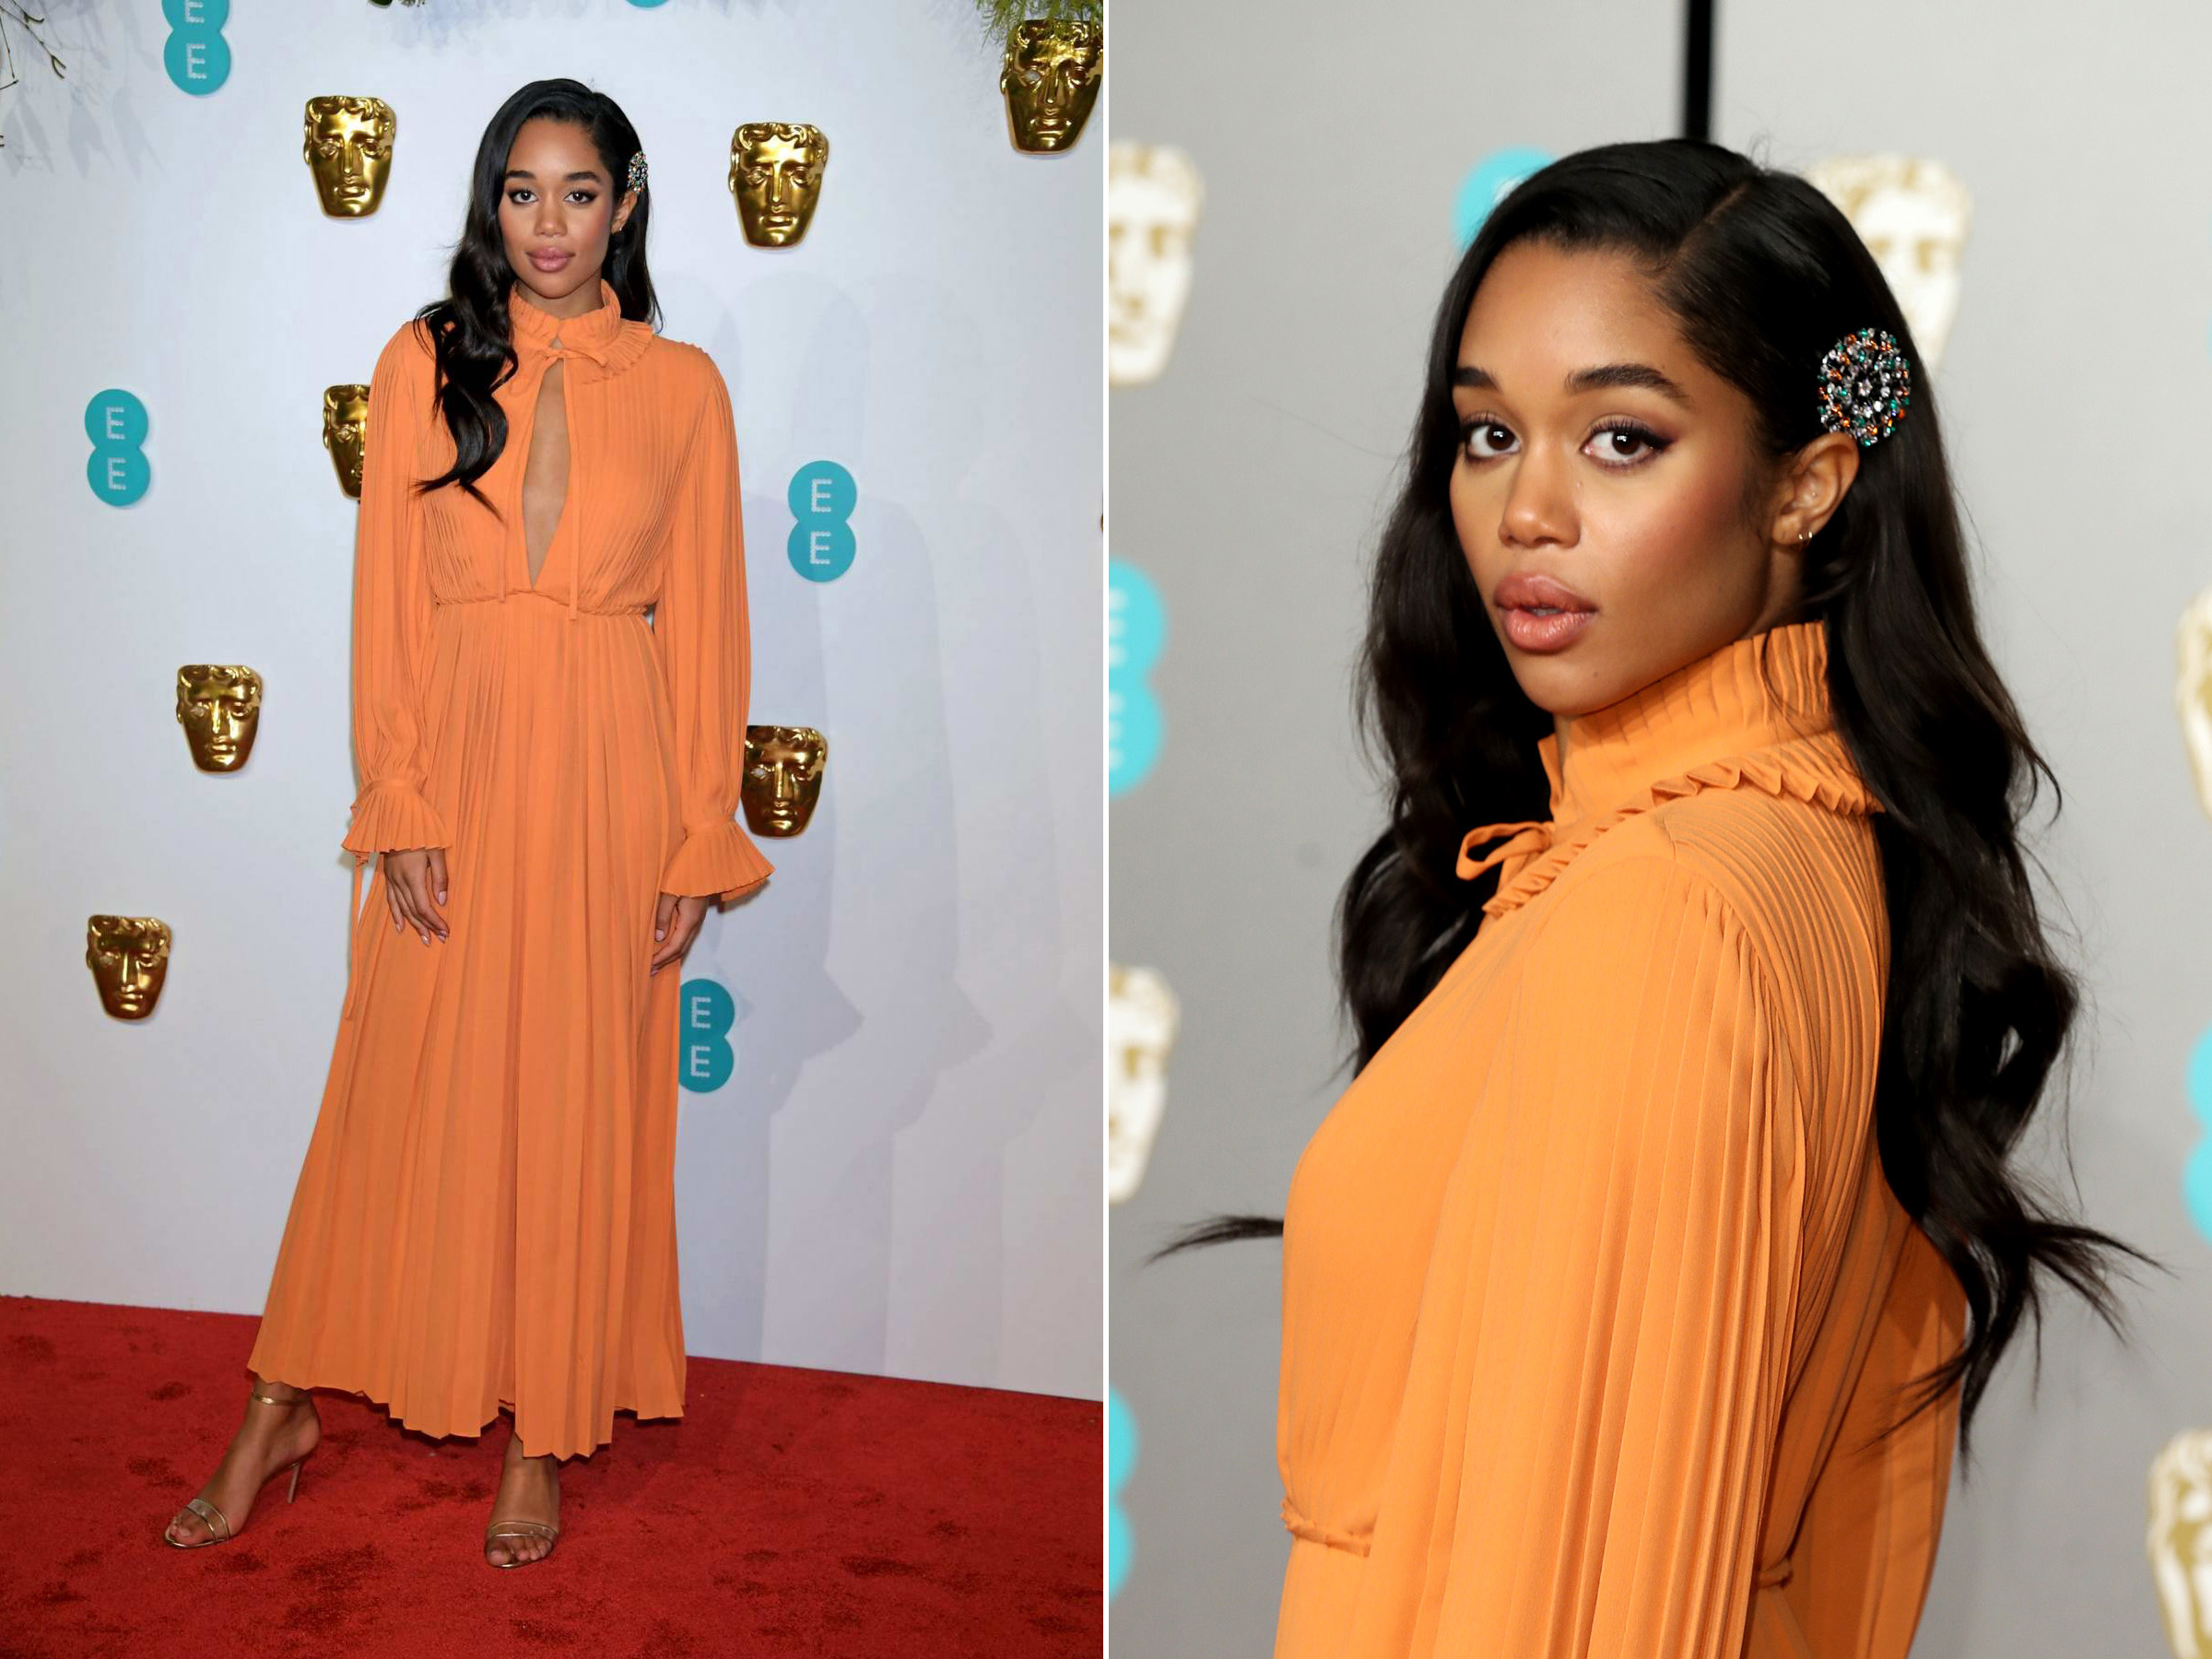 Laura Harrier at the 2019 BAFTA awards wearing a Bulgari high jewellery brooch as a hair accessory, with black onyx, emeralds and mandarin spessartite garnet